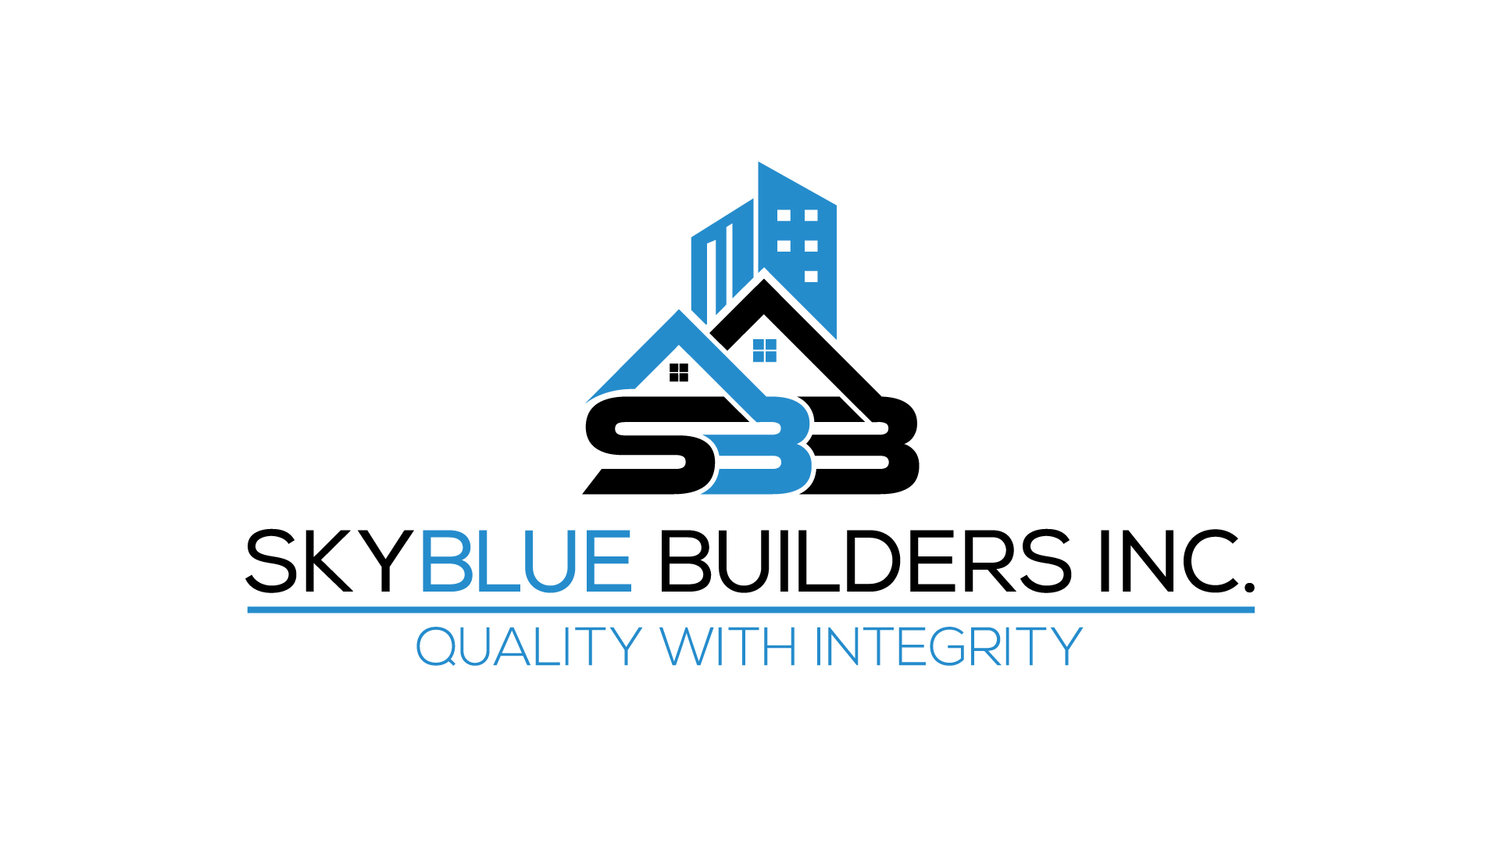 SkyBlue Builders Inc.